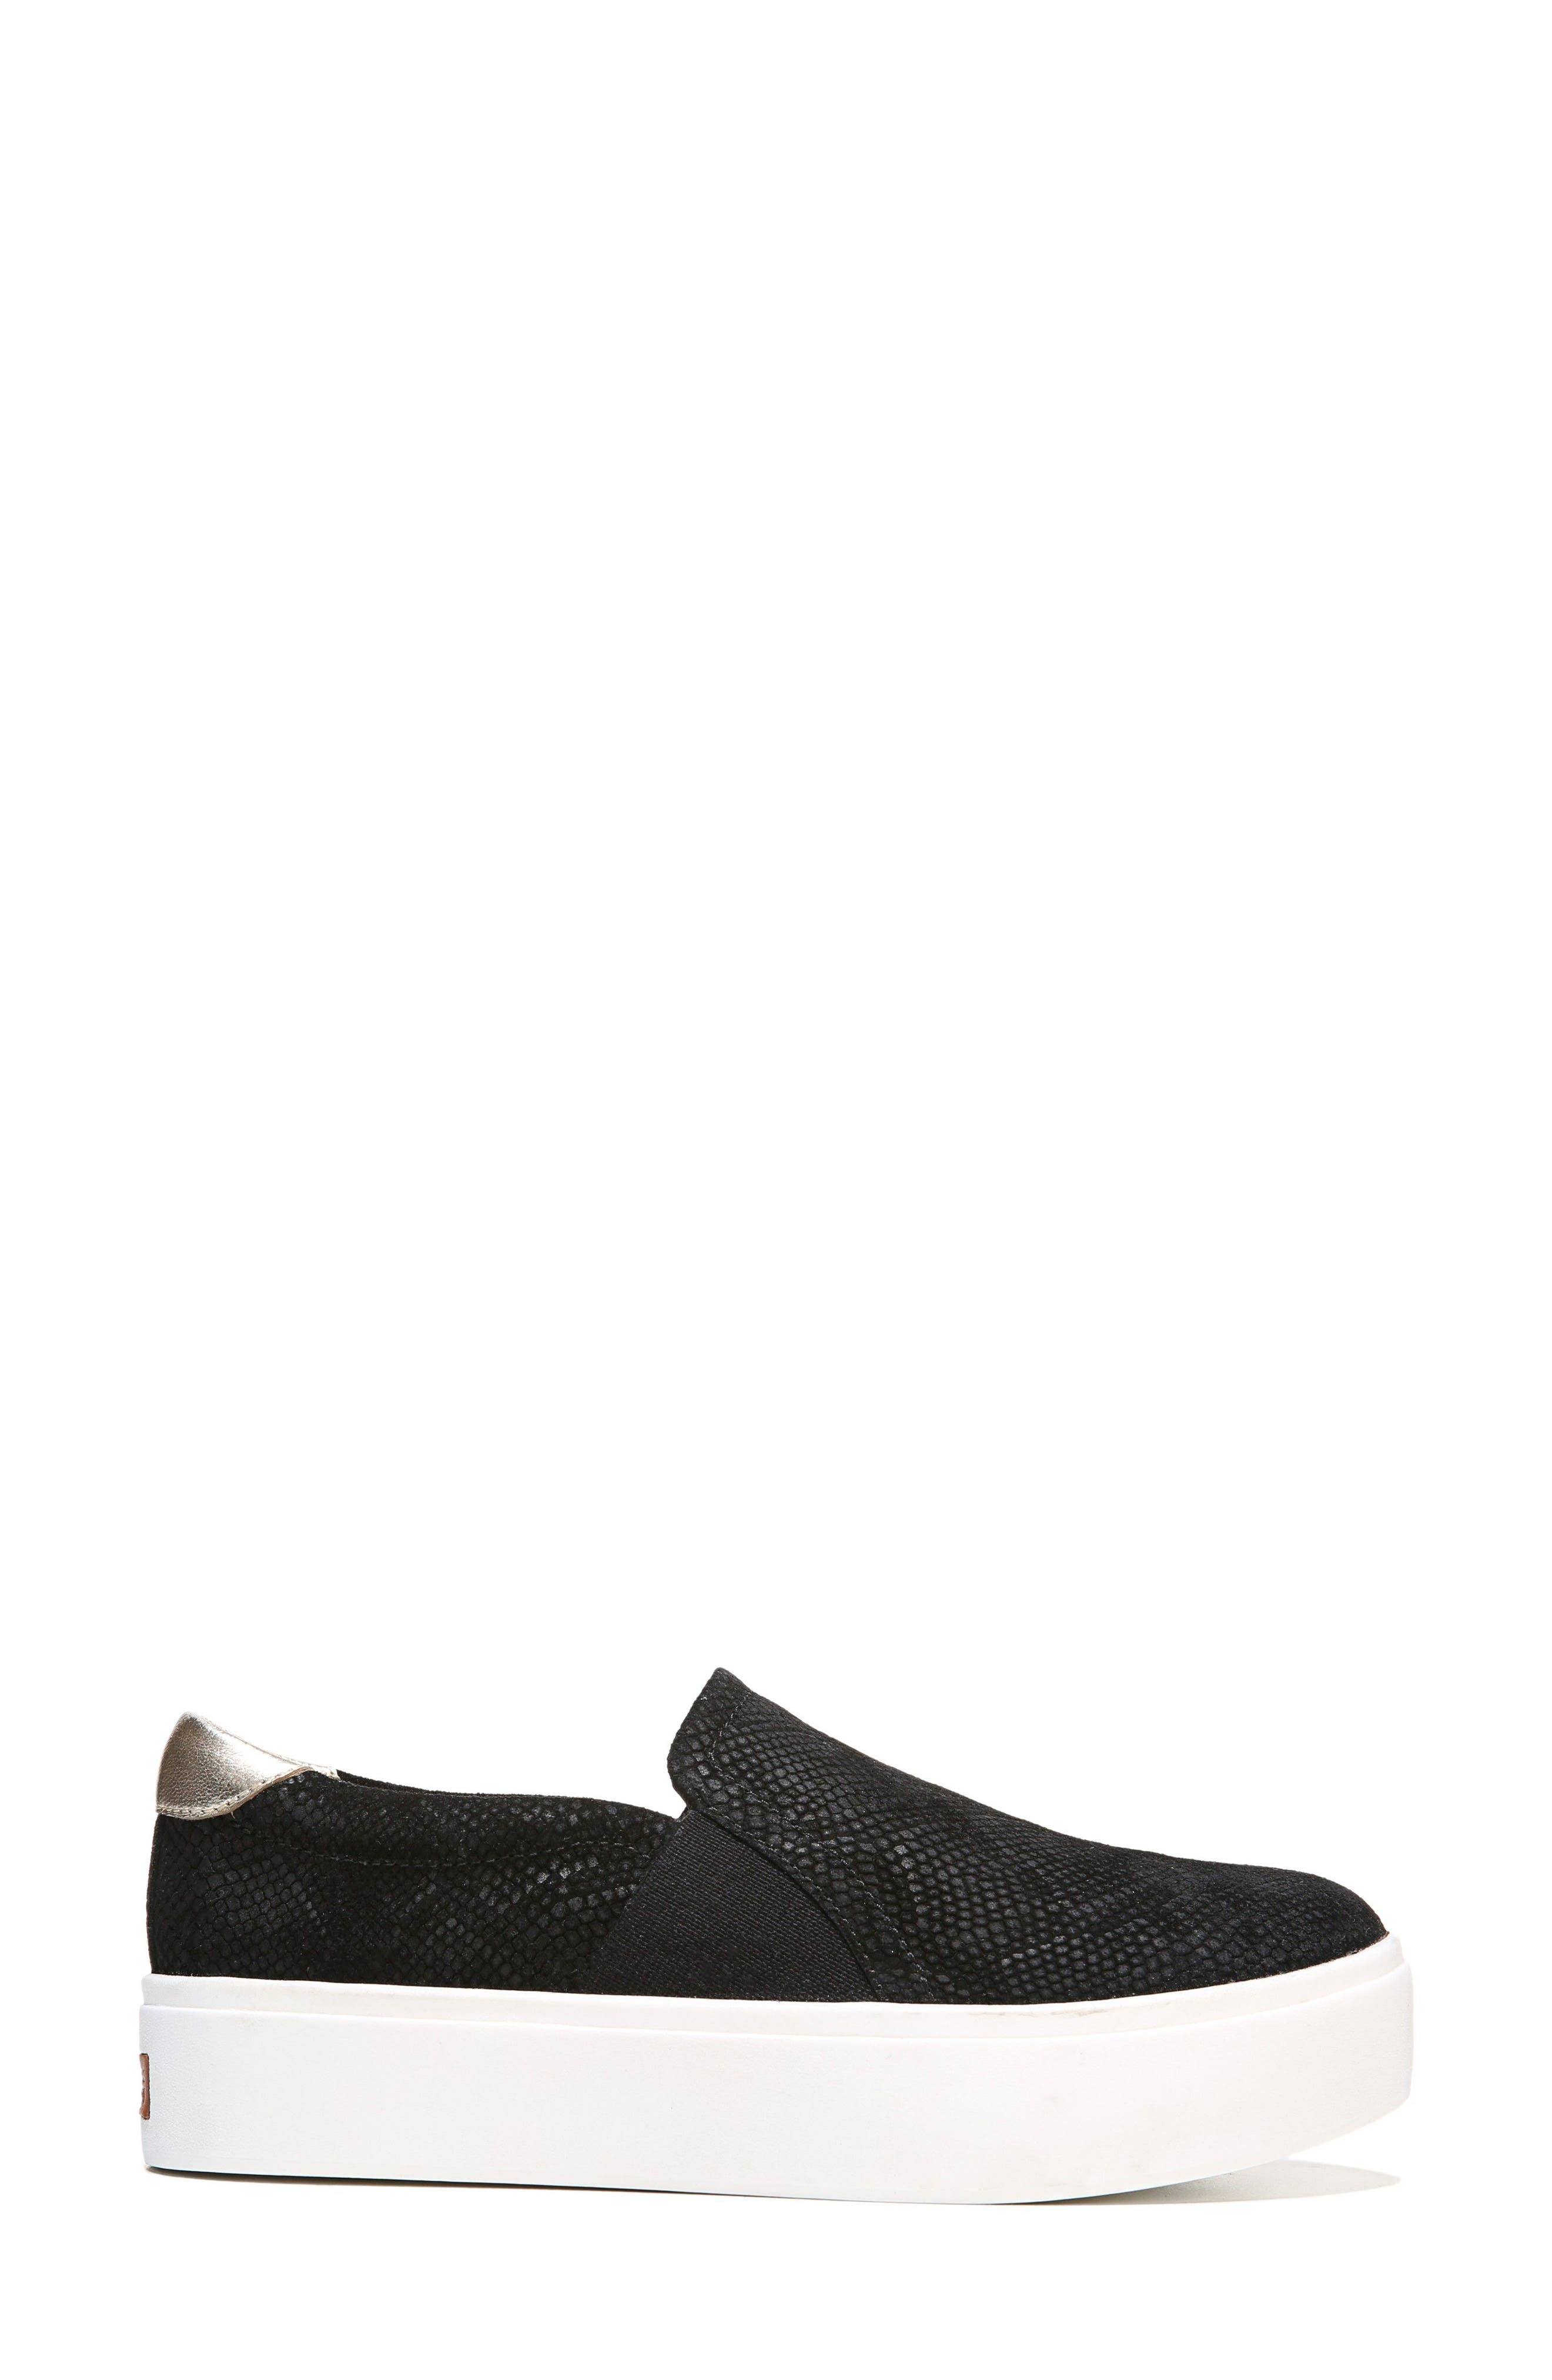 DR. SCHOLL'S, Abbot Slip-On Sneaker, Alternate thumbnail 3, color, BLACK SUEDE